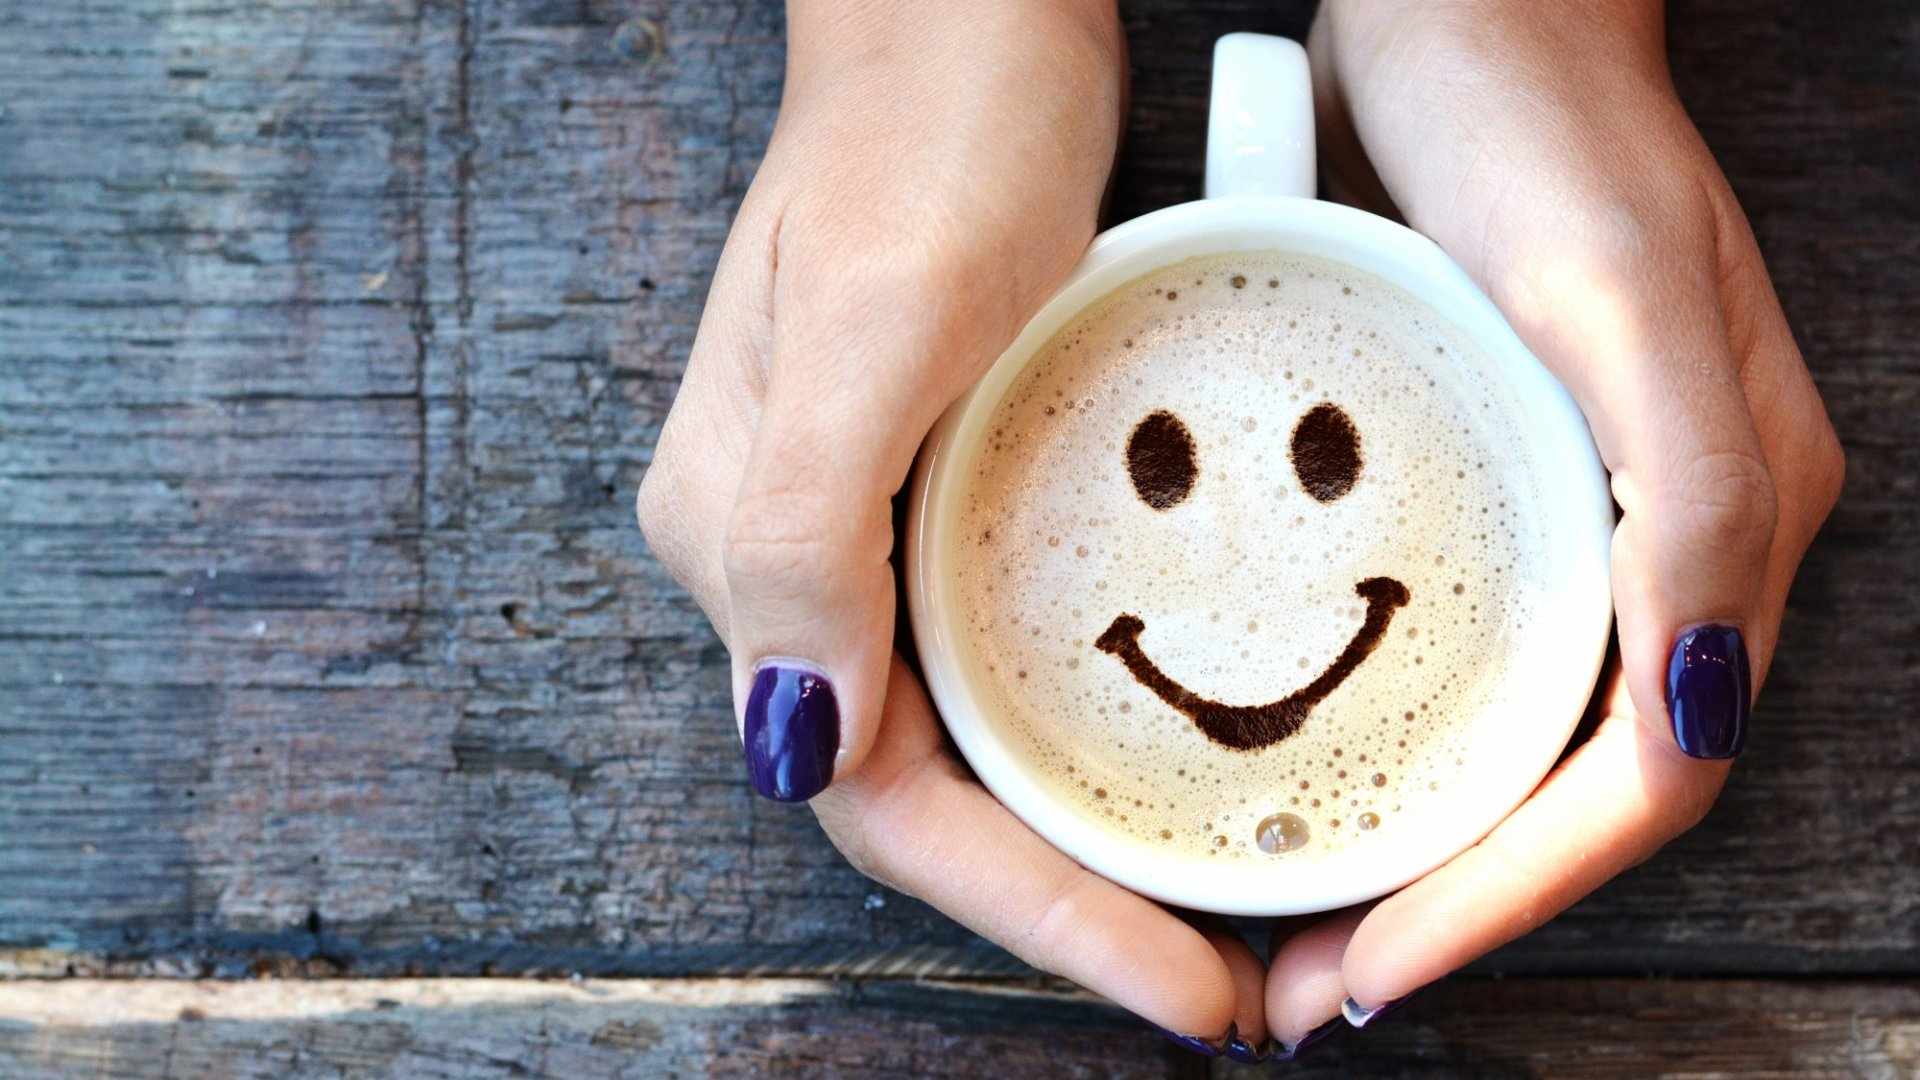 13 Quotes Scientifically Proven to Improve Your Day